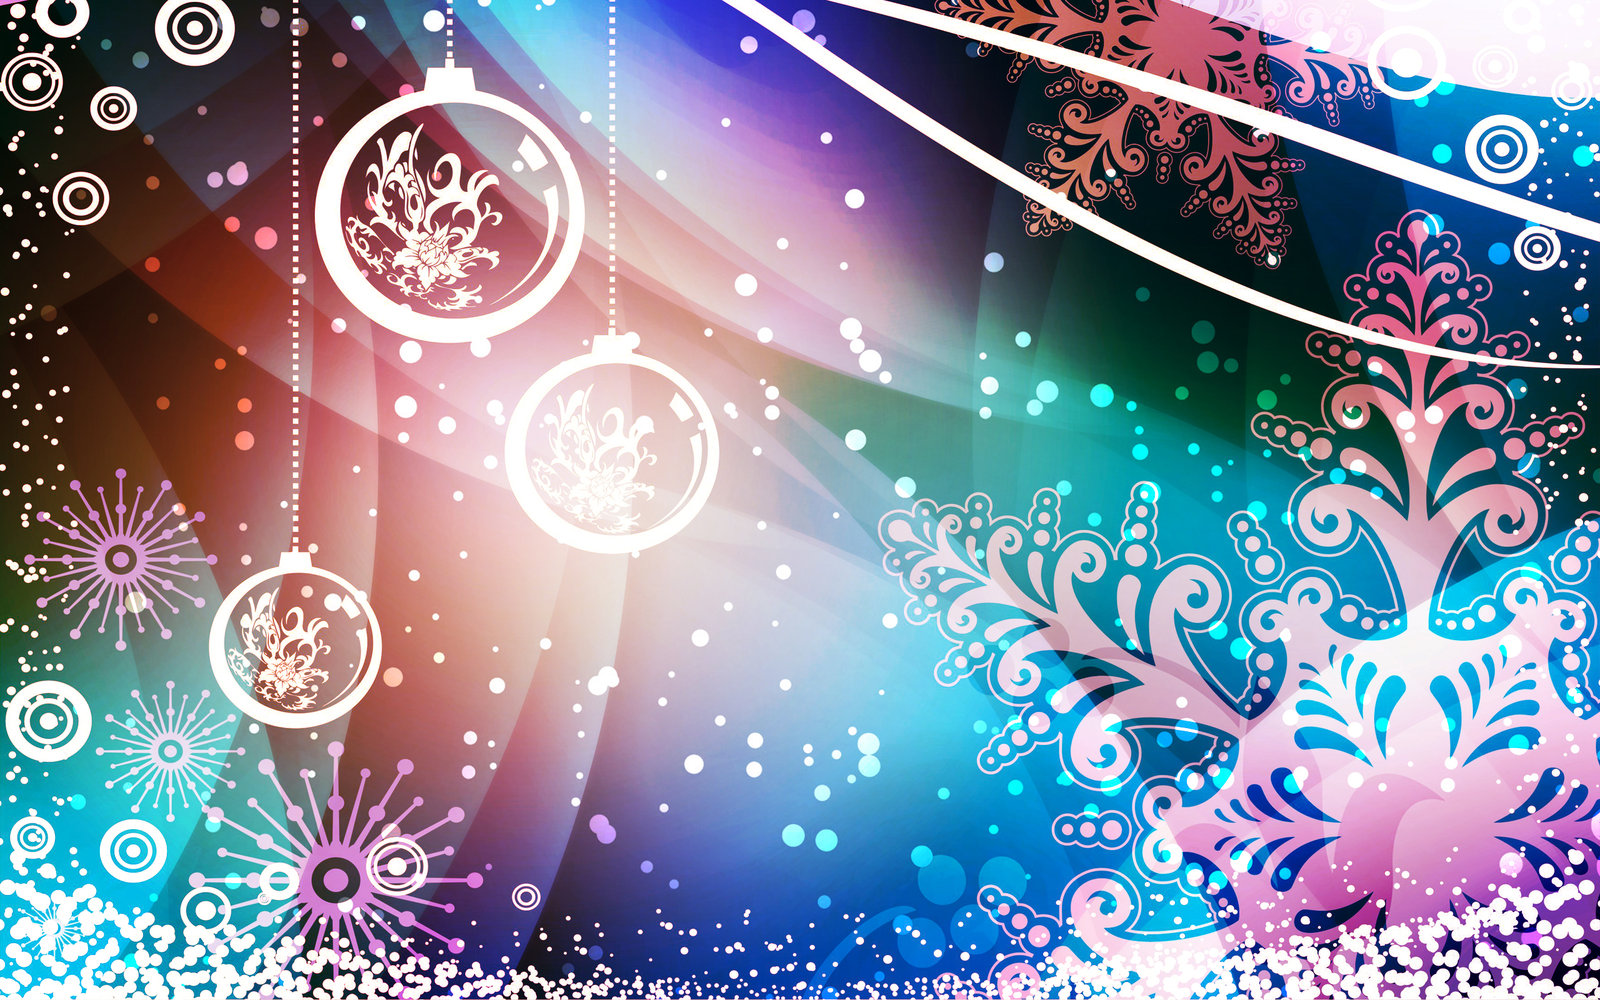 33 Very Creative Christmas Wallpapers